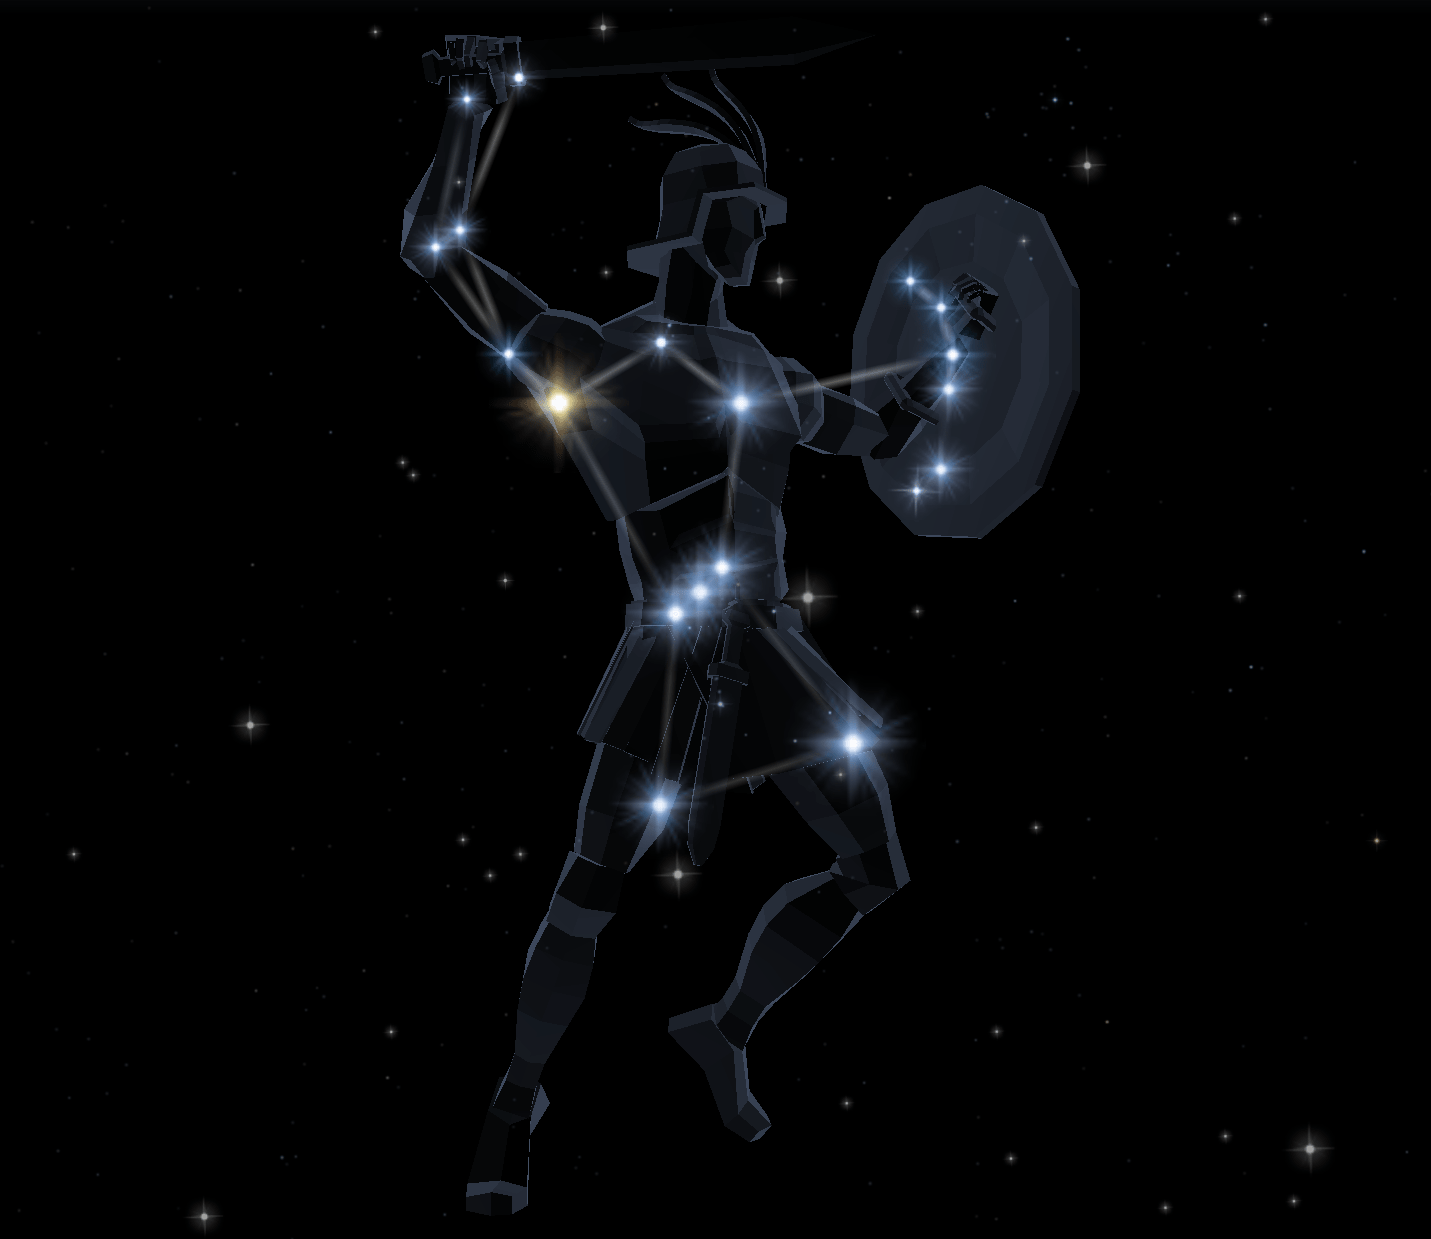 The various legends about the orion constellation